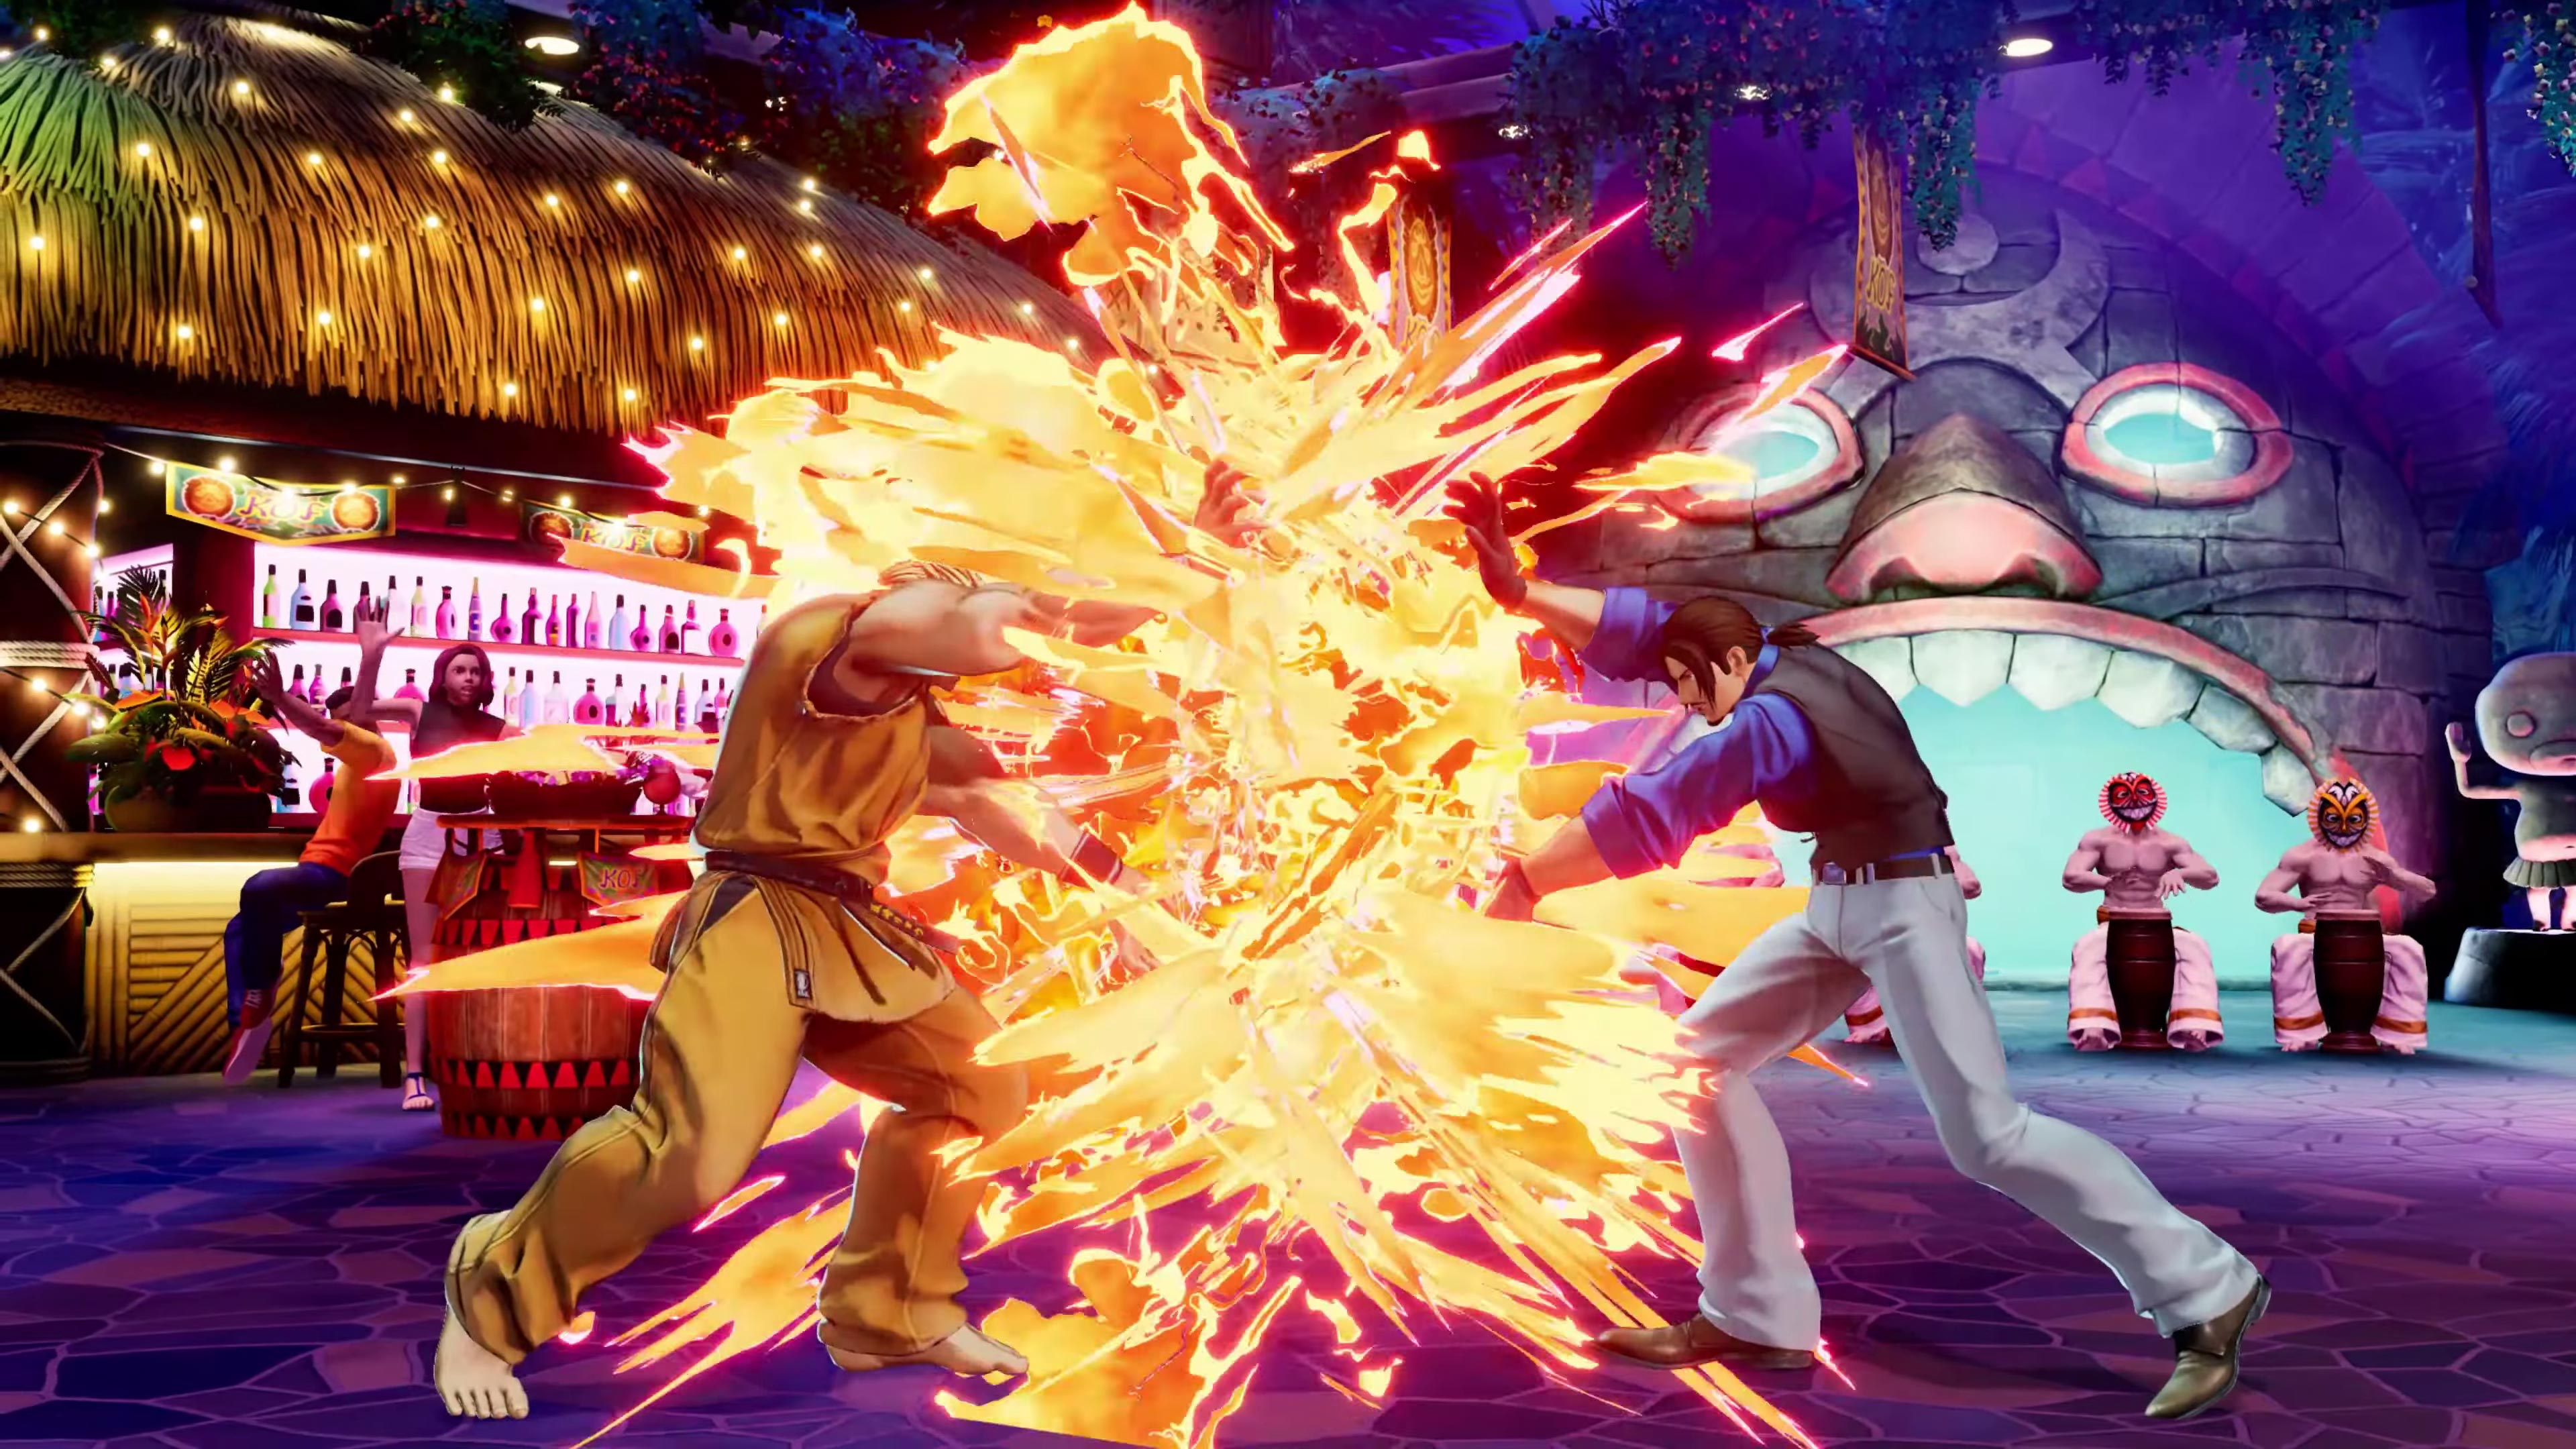 Robert and Ryo KOF15 reveal 6 out of 9 image gallery